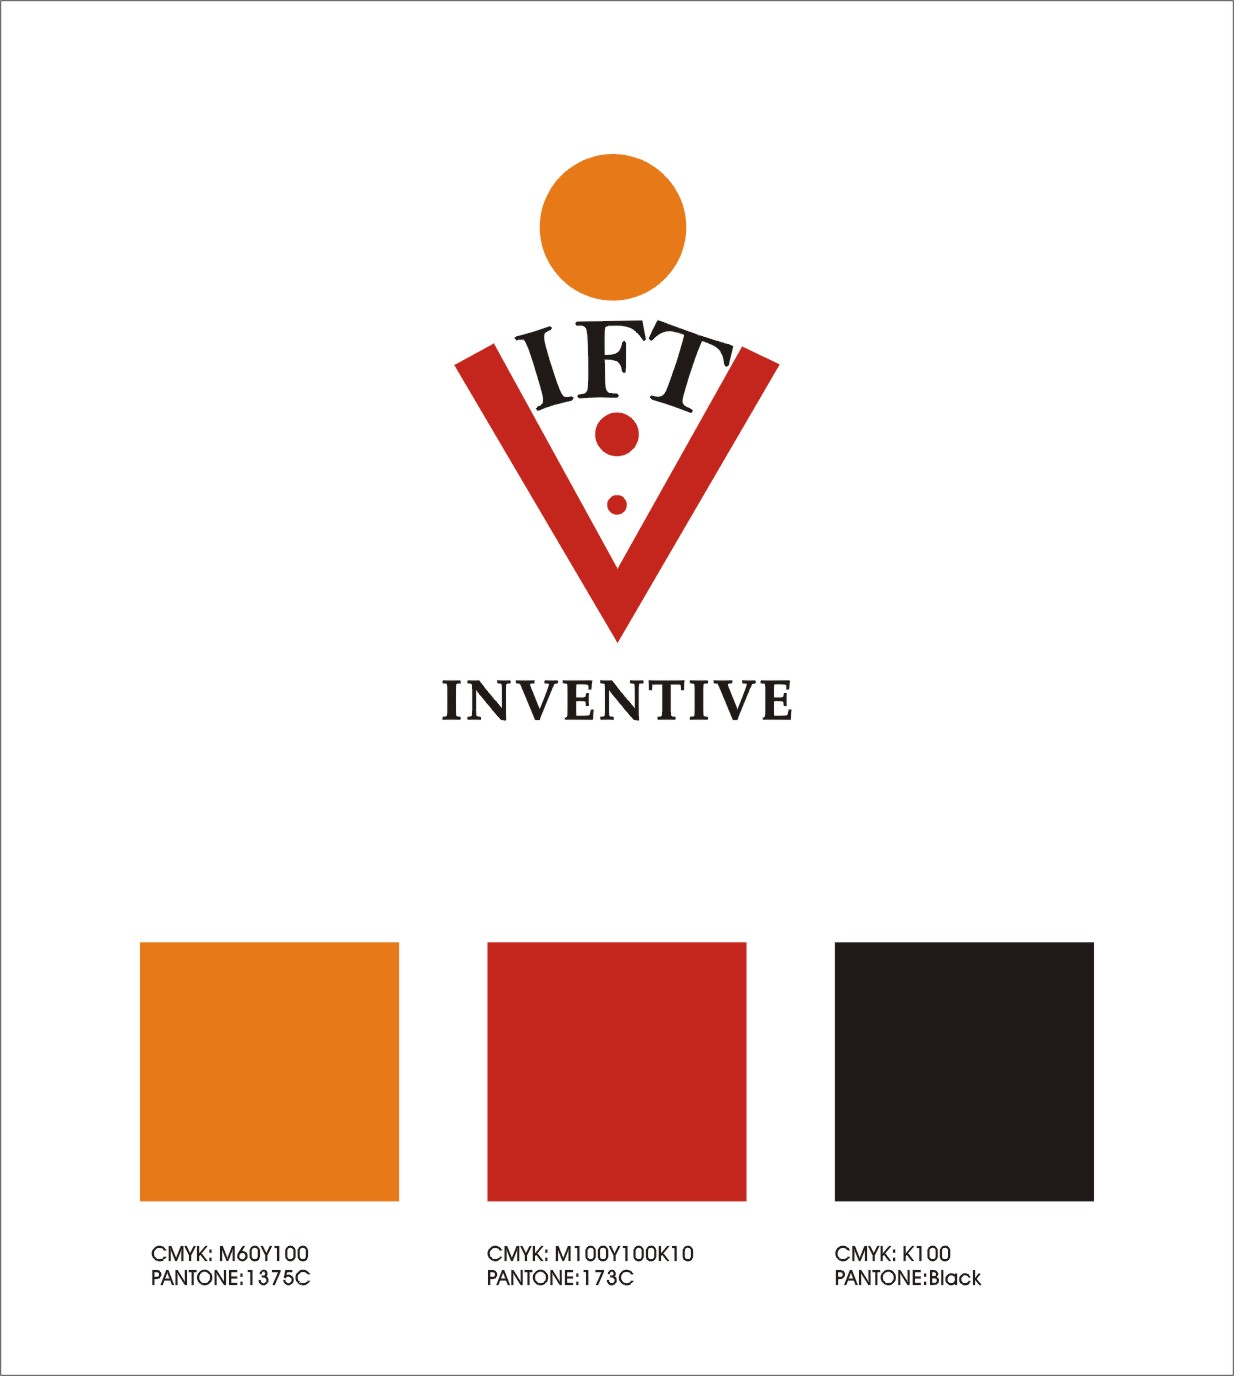 INVENTIVE FOOD TECHNOLOGY (ZQ) LTD